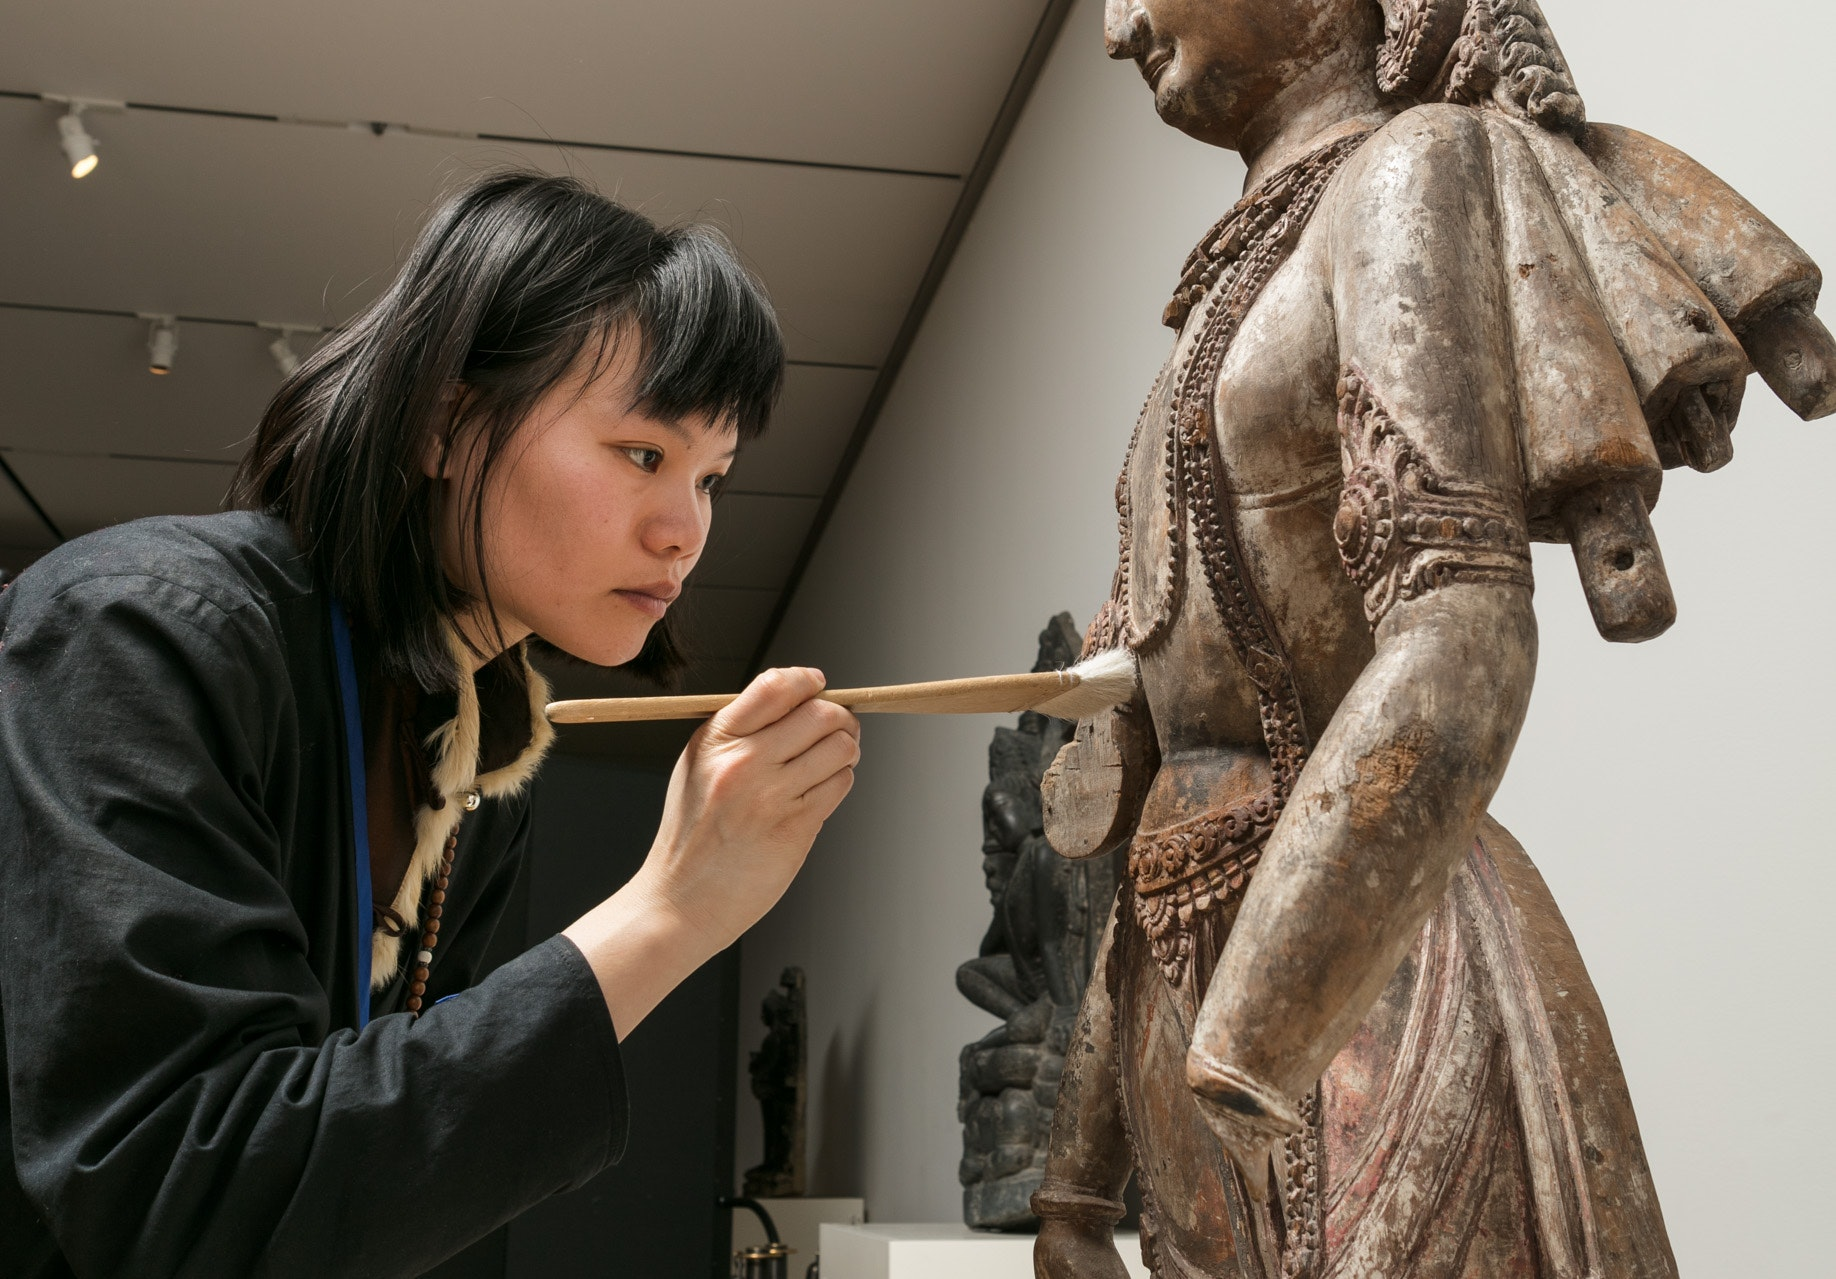 a conservator uses a brush to adjust an Asian sculpture